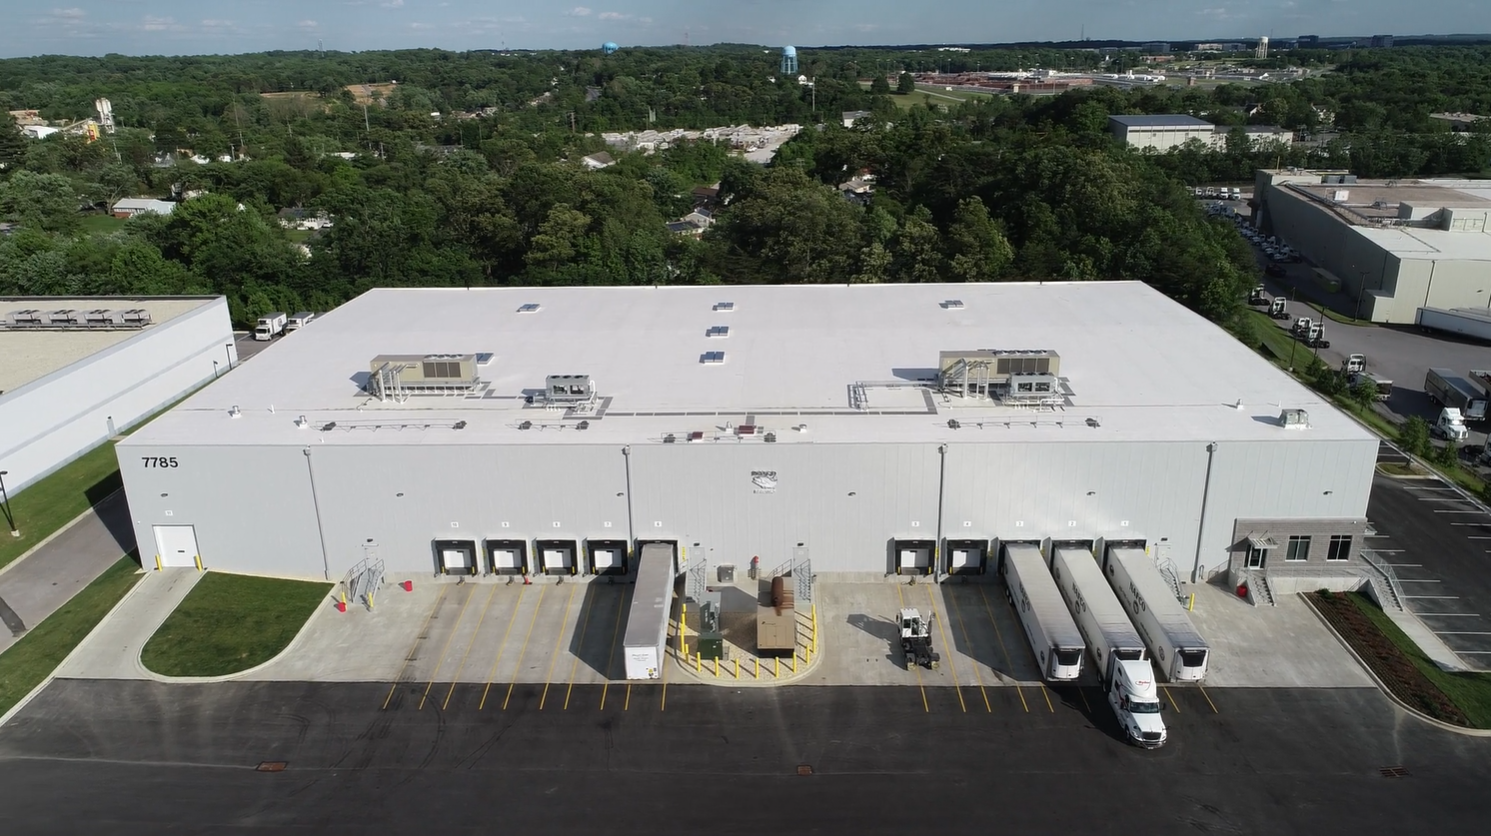 Drone aerial of NAFCO seafood distribution center in Jessup, MD